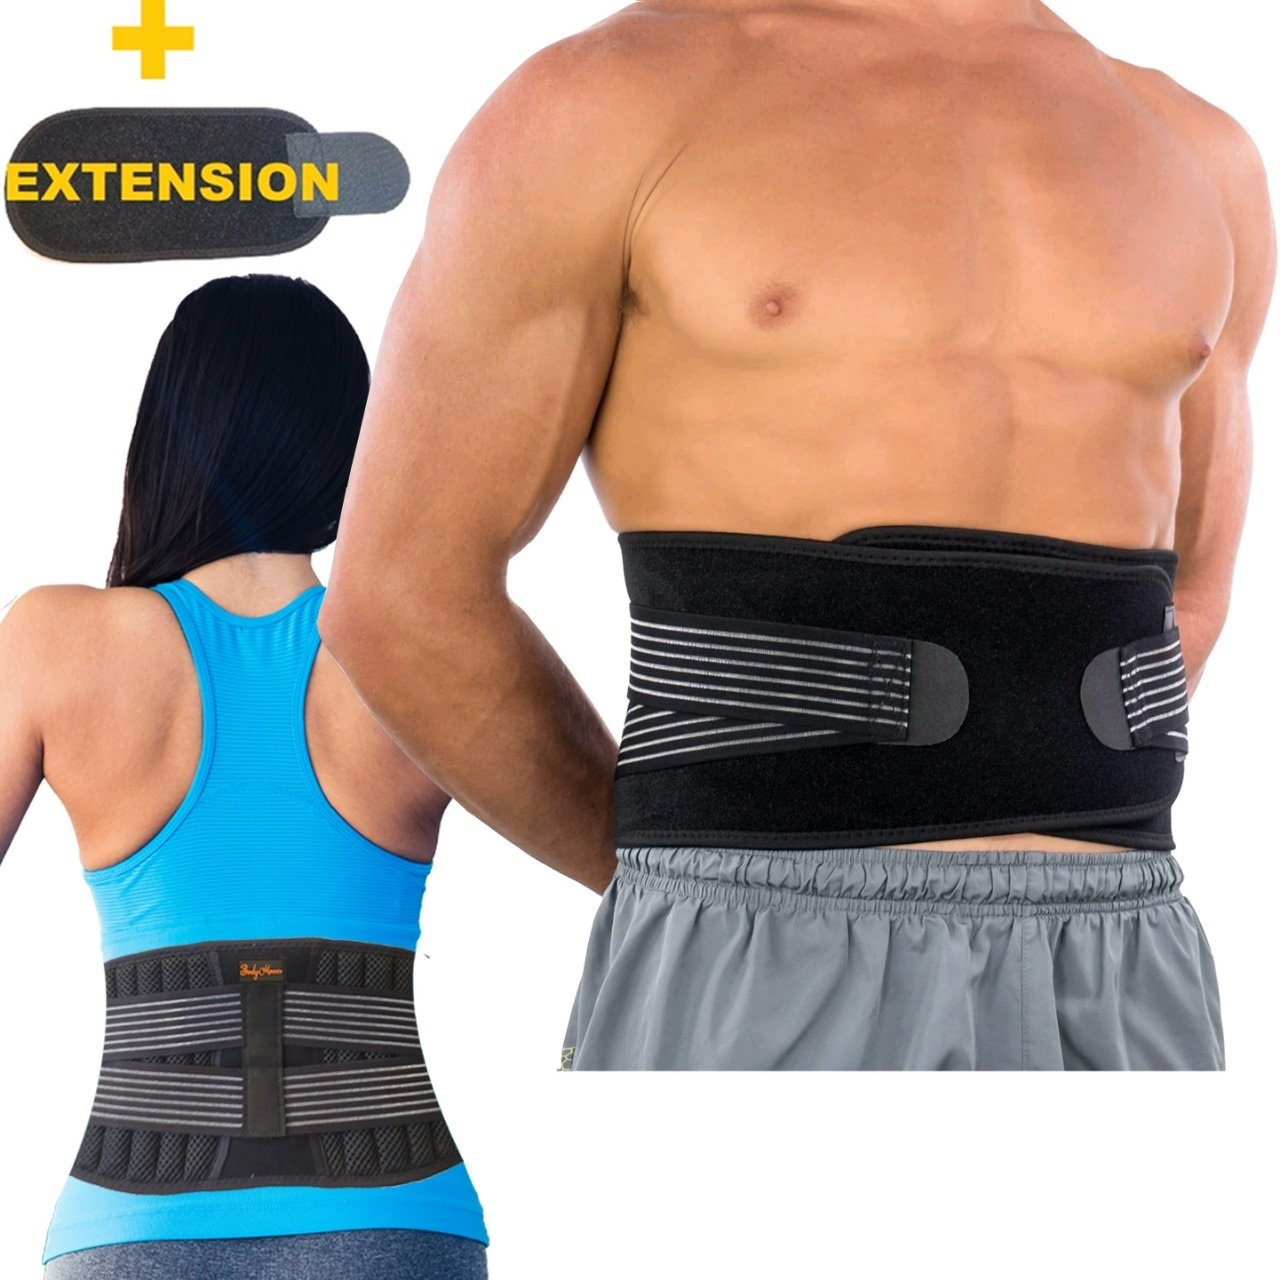 BodyMoves Back Brace Lumbar Support for Men and Women with Dual Adjustable Straps and Extension Belt -Lower Back Pain Relief,Spasm,Strain,Herniated Disc,Sciatica,Scoliosis,Lifting,Better Back (Reg)